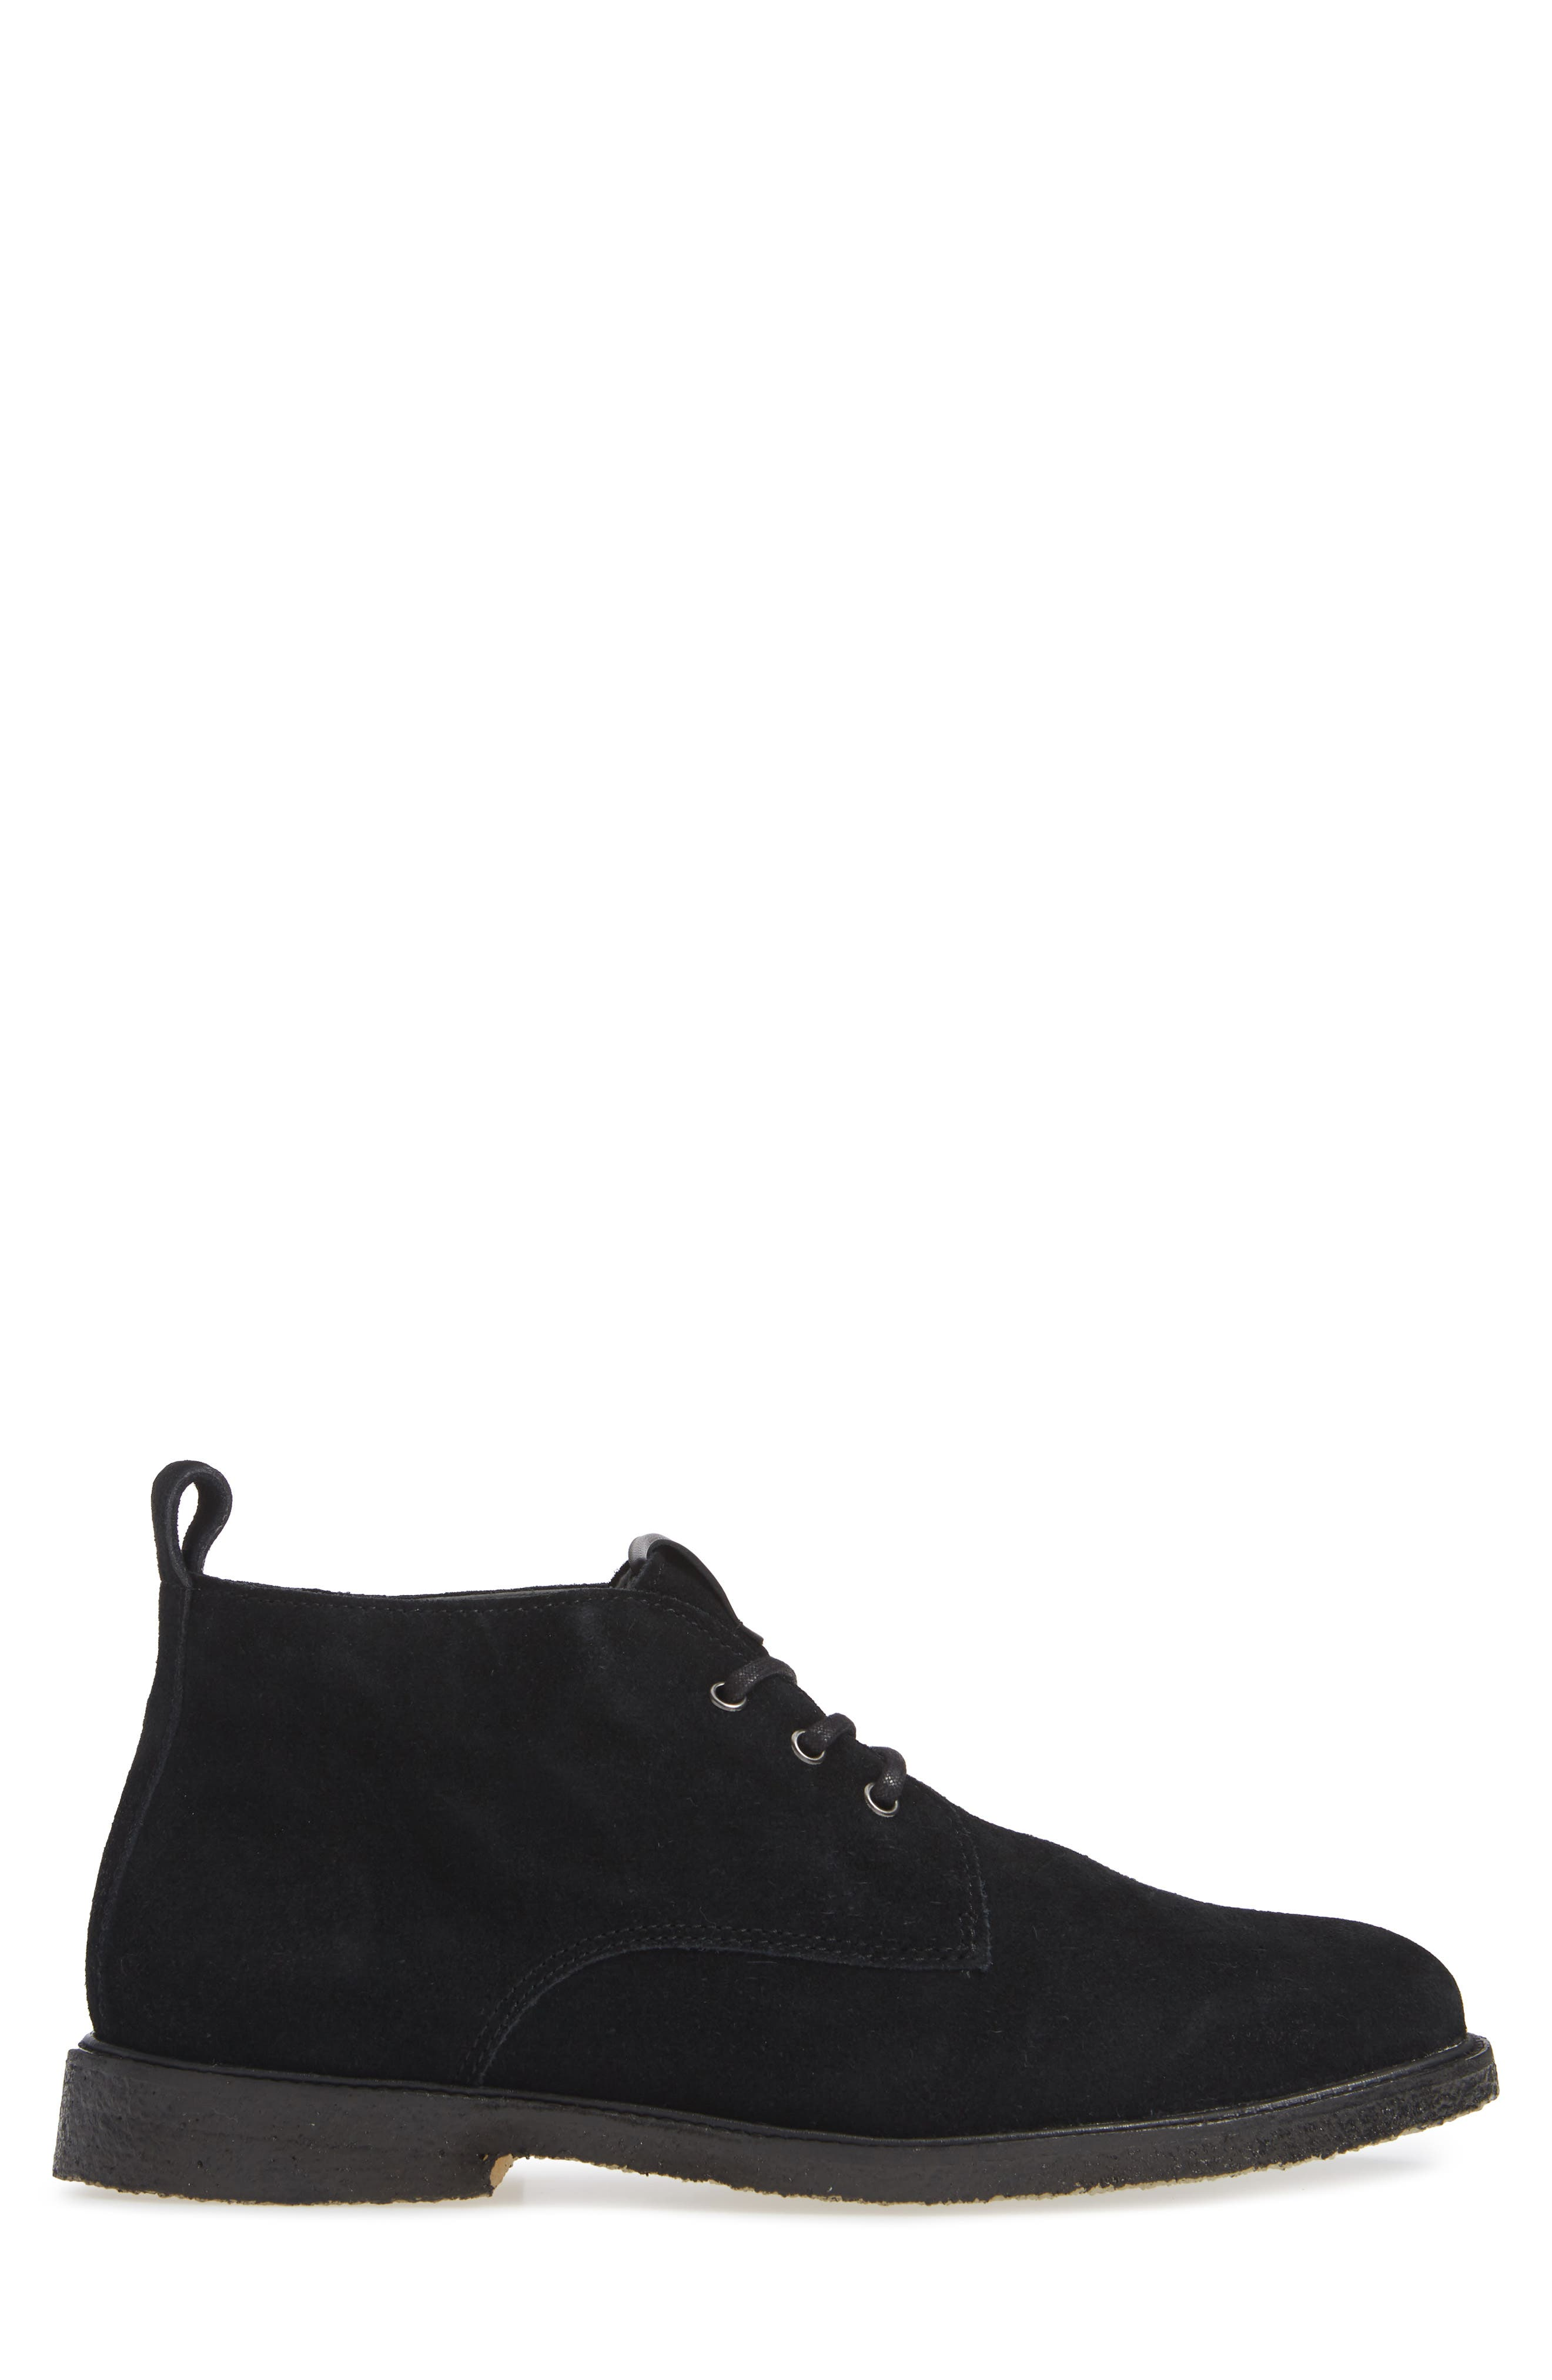 QM82 Chukka Boot,                             Alternate thumbnail 3, color,                             BLACK